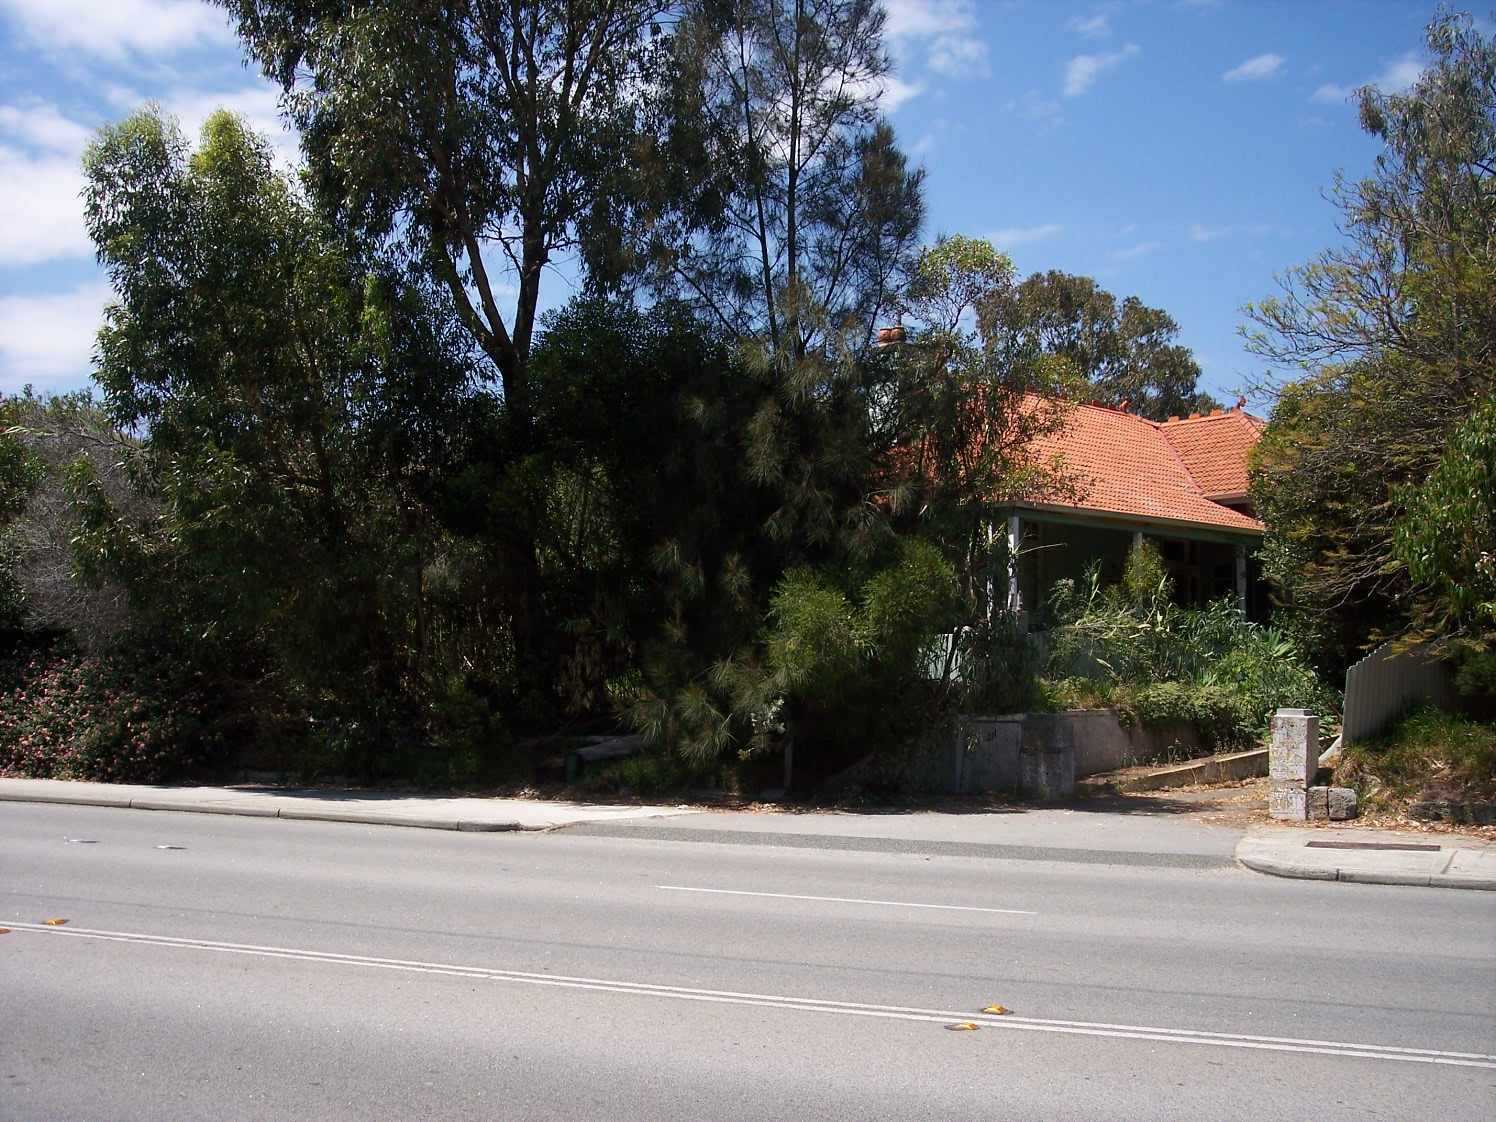 31-10-06 View SSE 211 Canning Highway.jpg